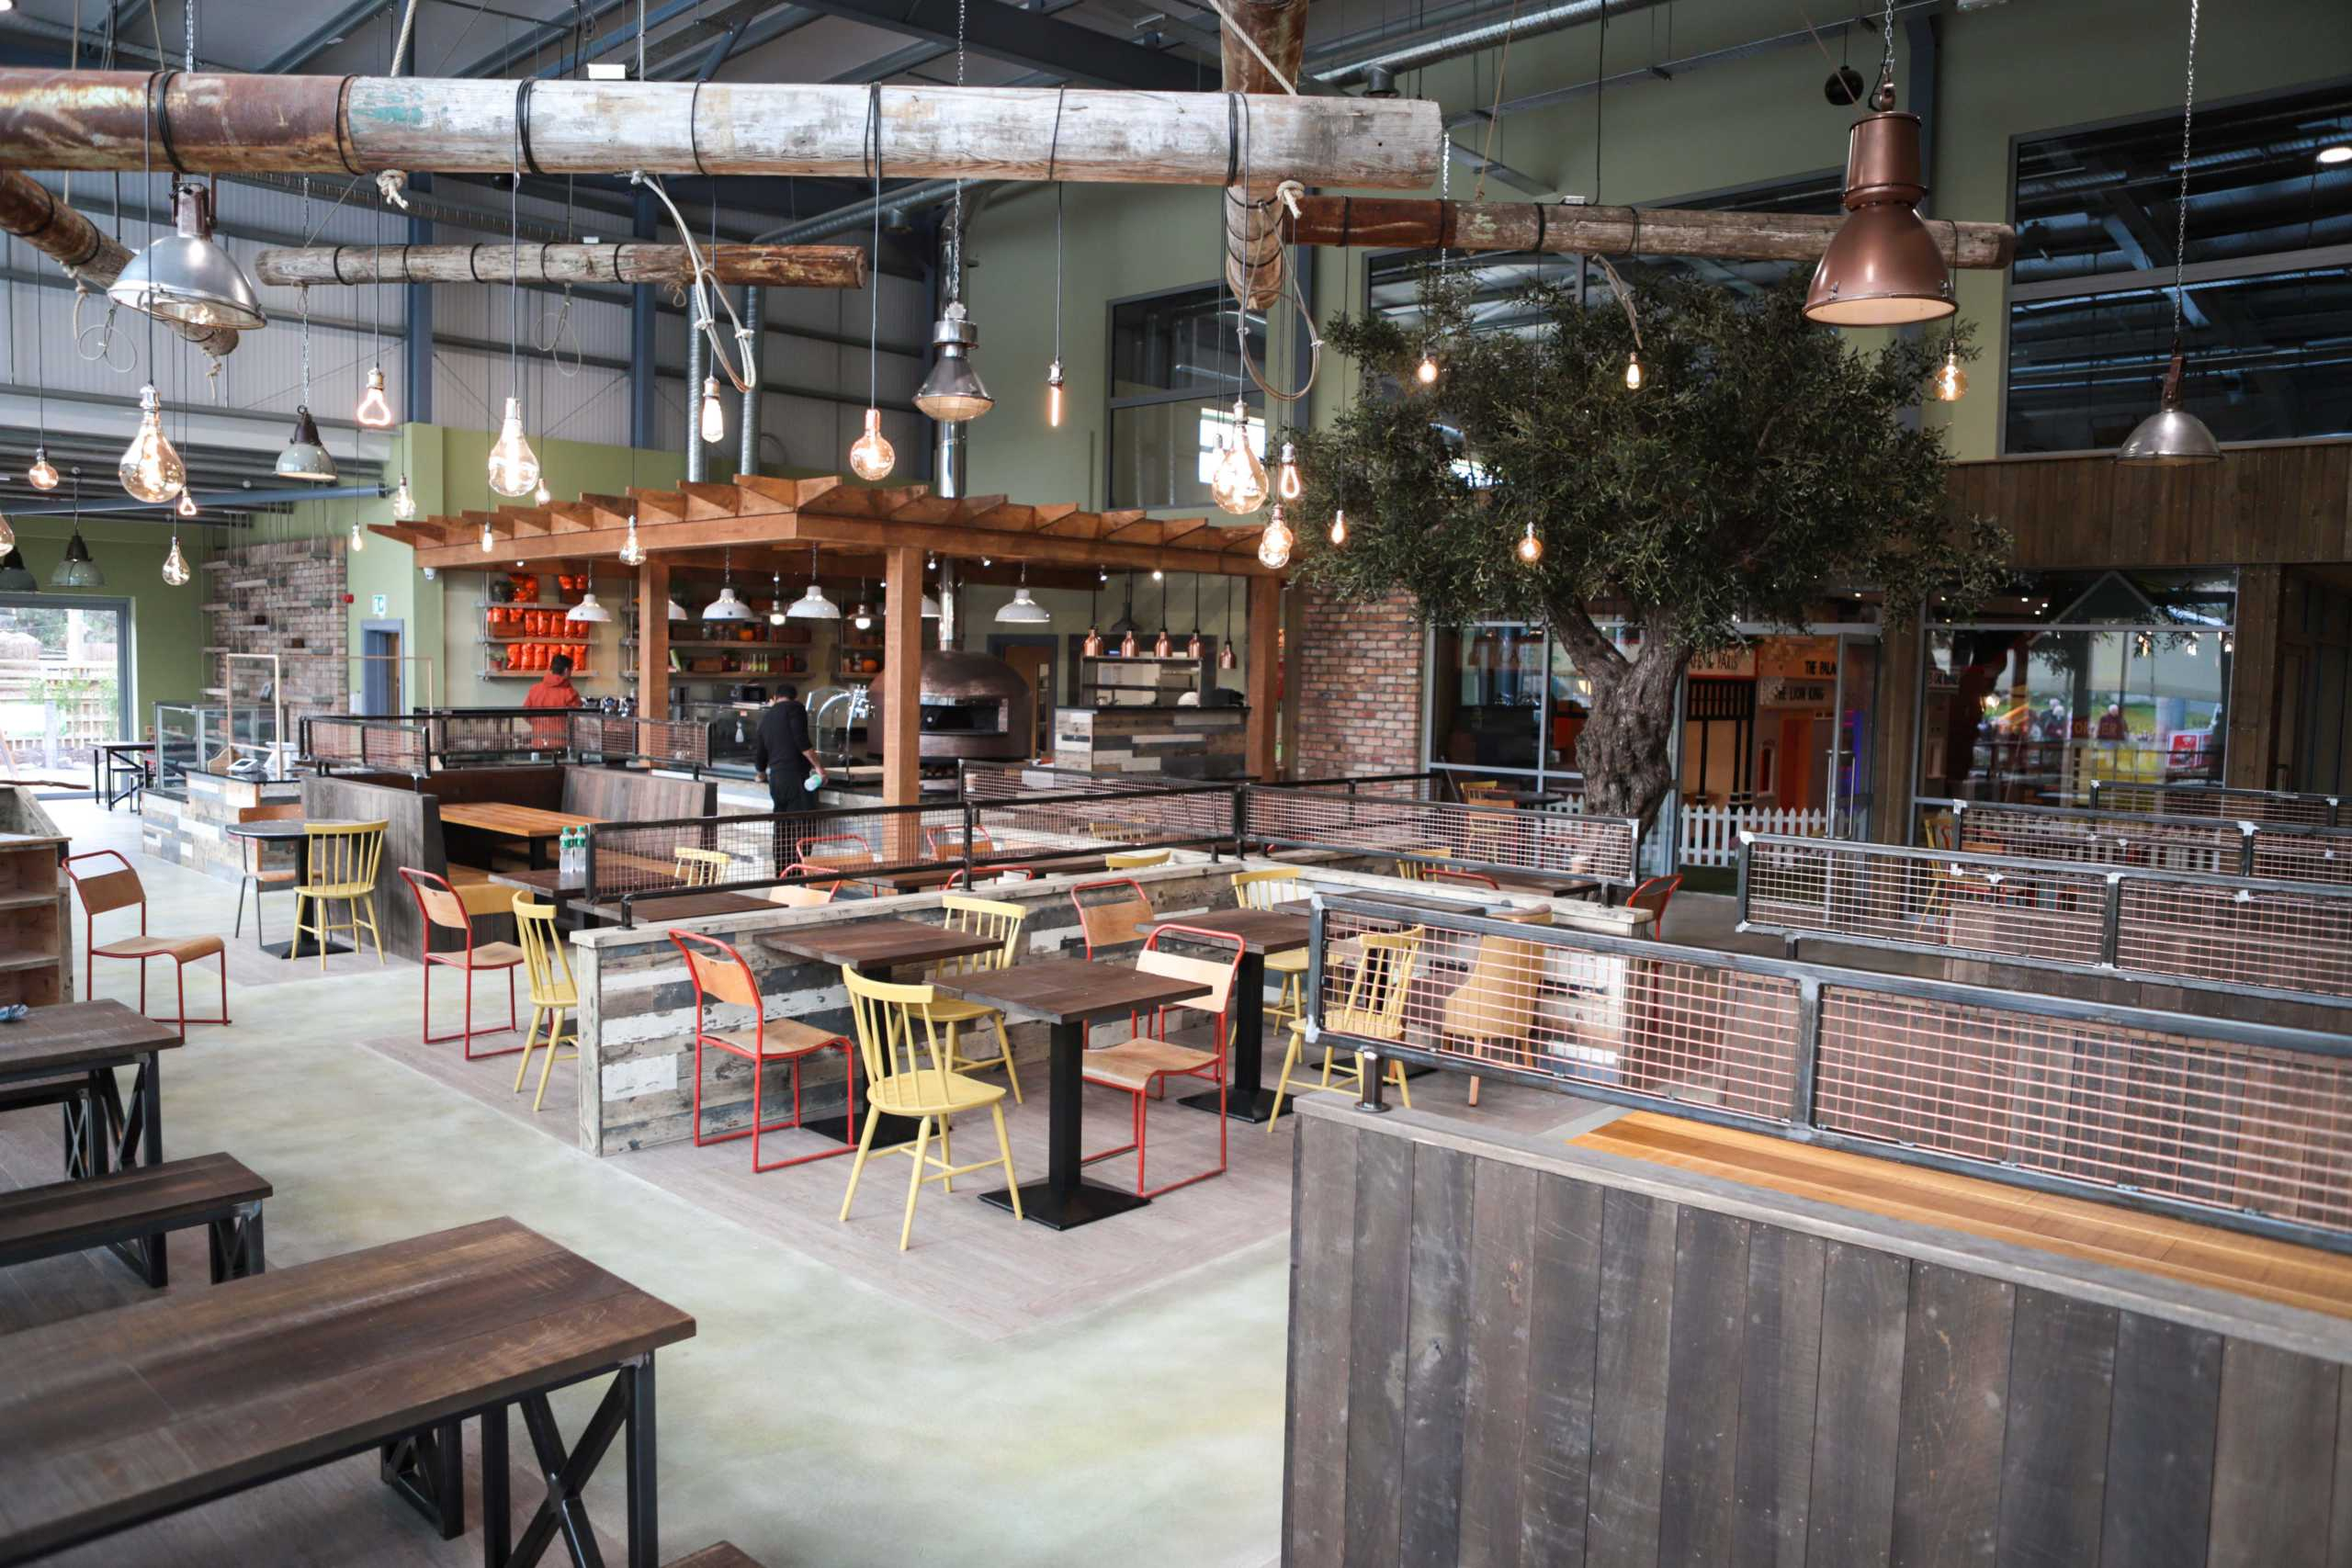 galway daily food Born to be Wild - Wildlands restaurant has its grand opening in lockdown